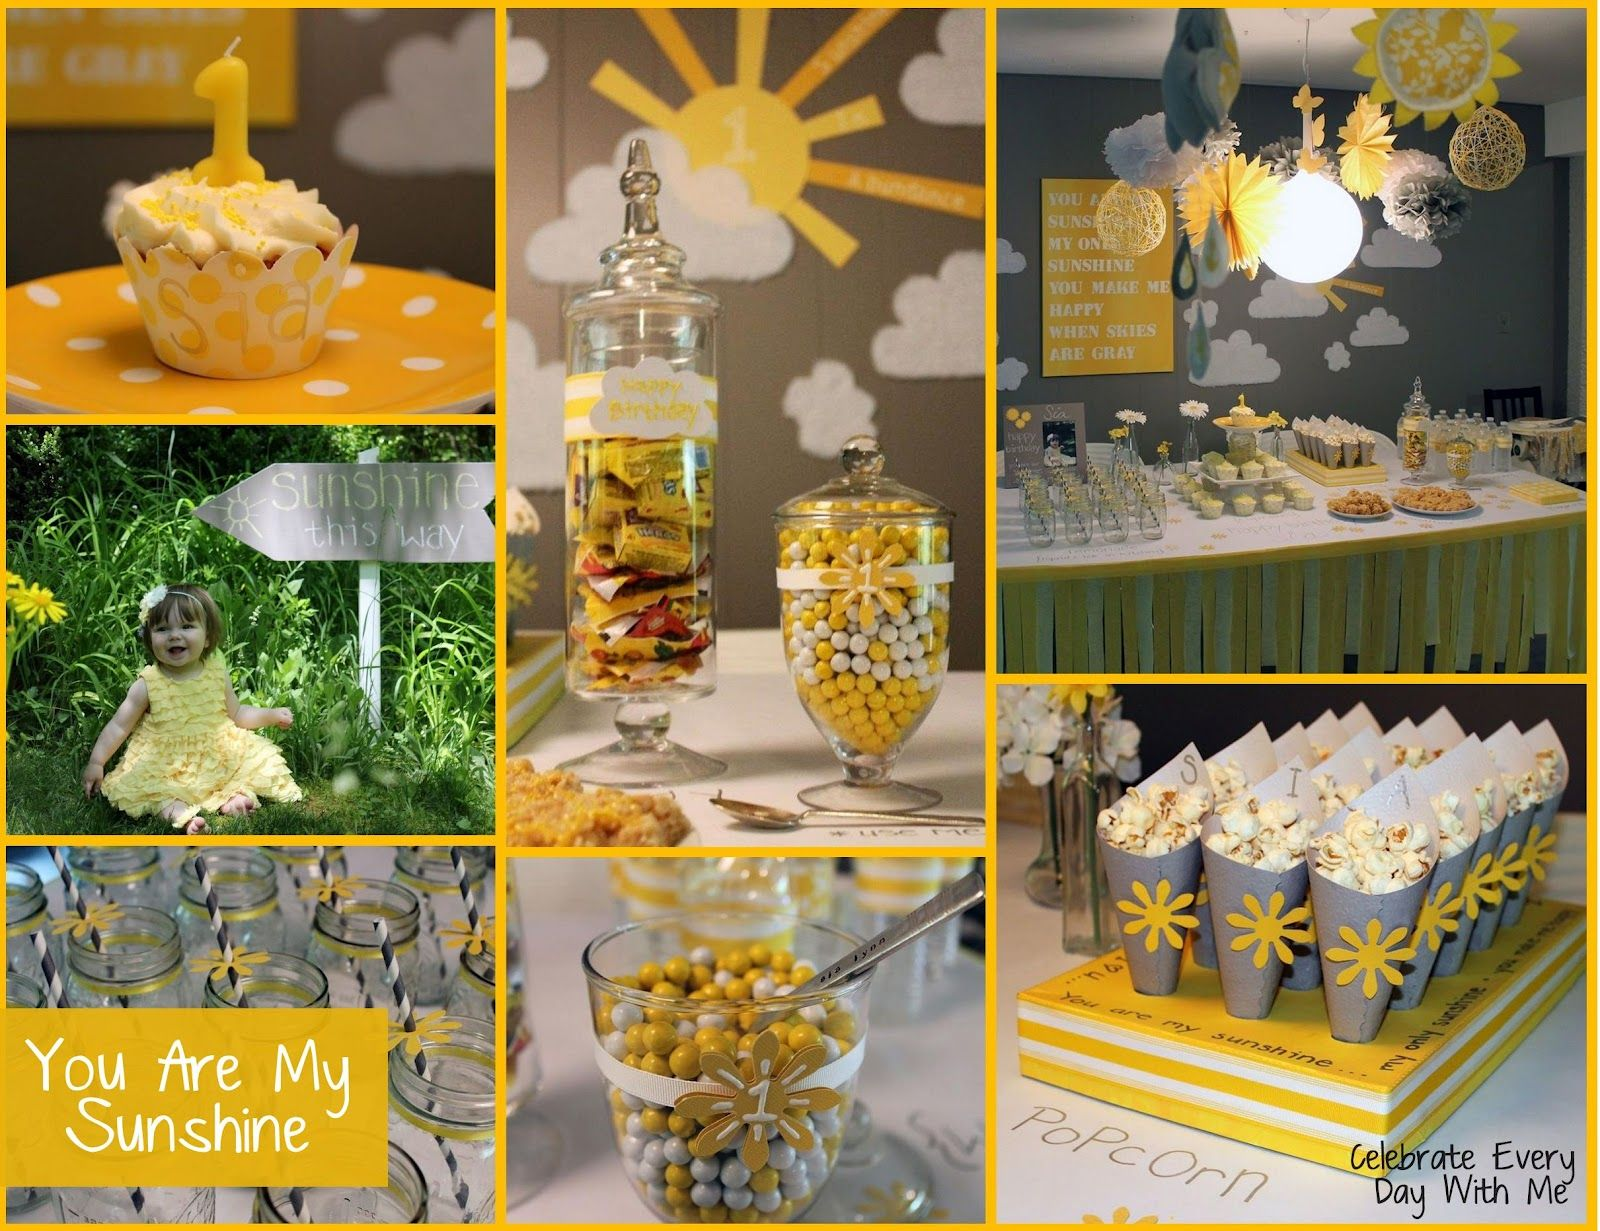 Baby Shower Ideas You Are My Sunshine ~ You are my sunshine party celebrate every day with me celebrate